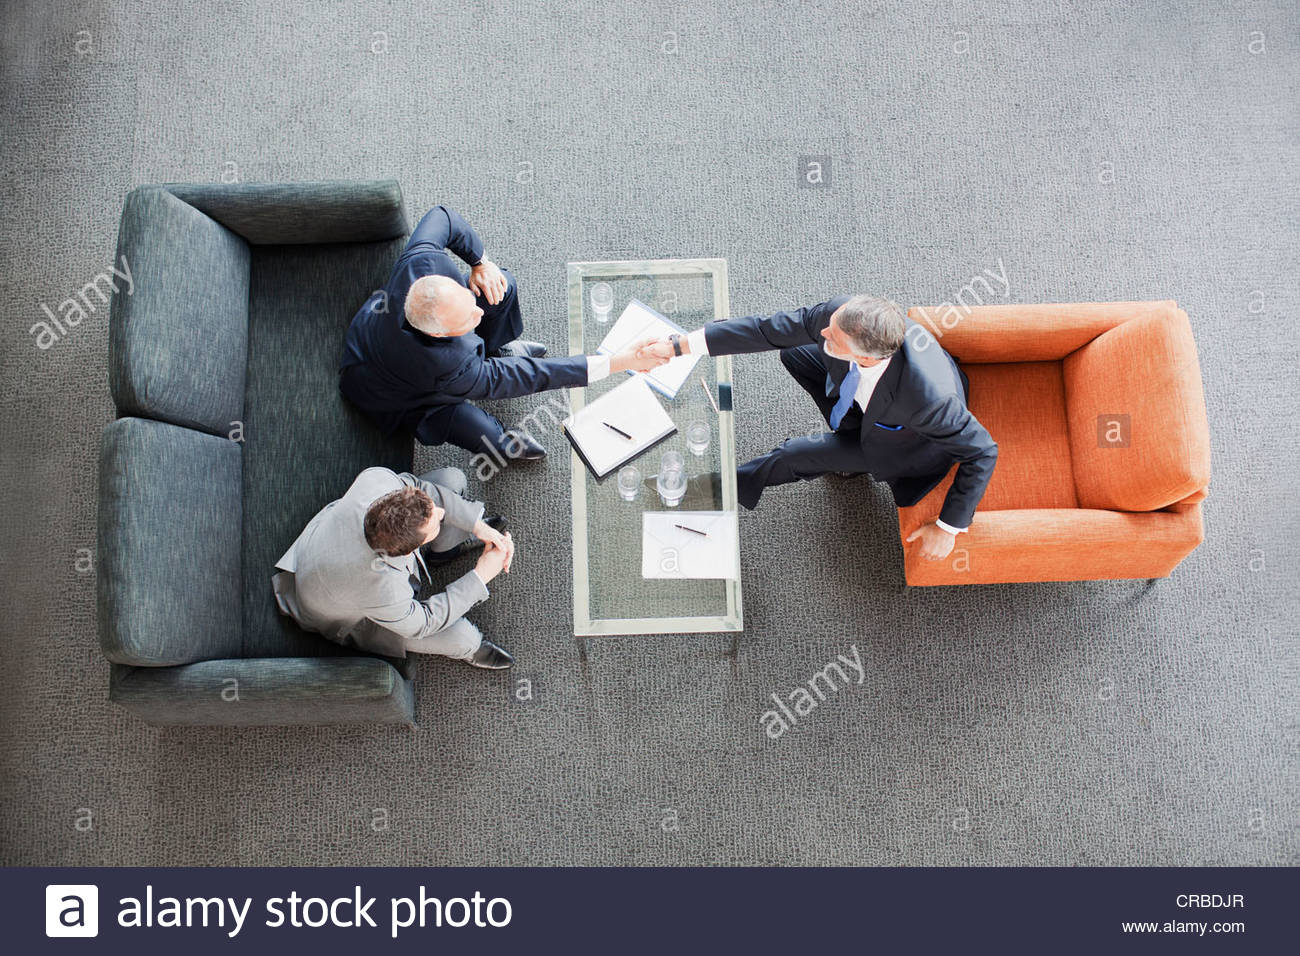 Businessmen shaking hands across coffee table in office lobby - Stock Image